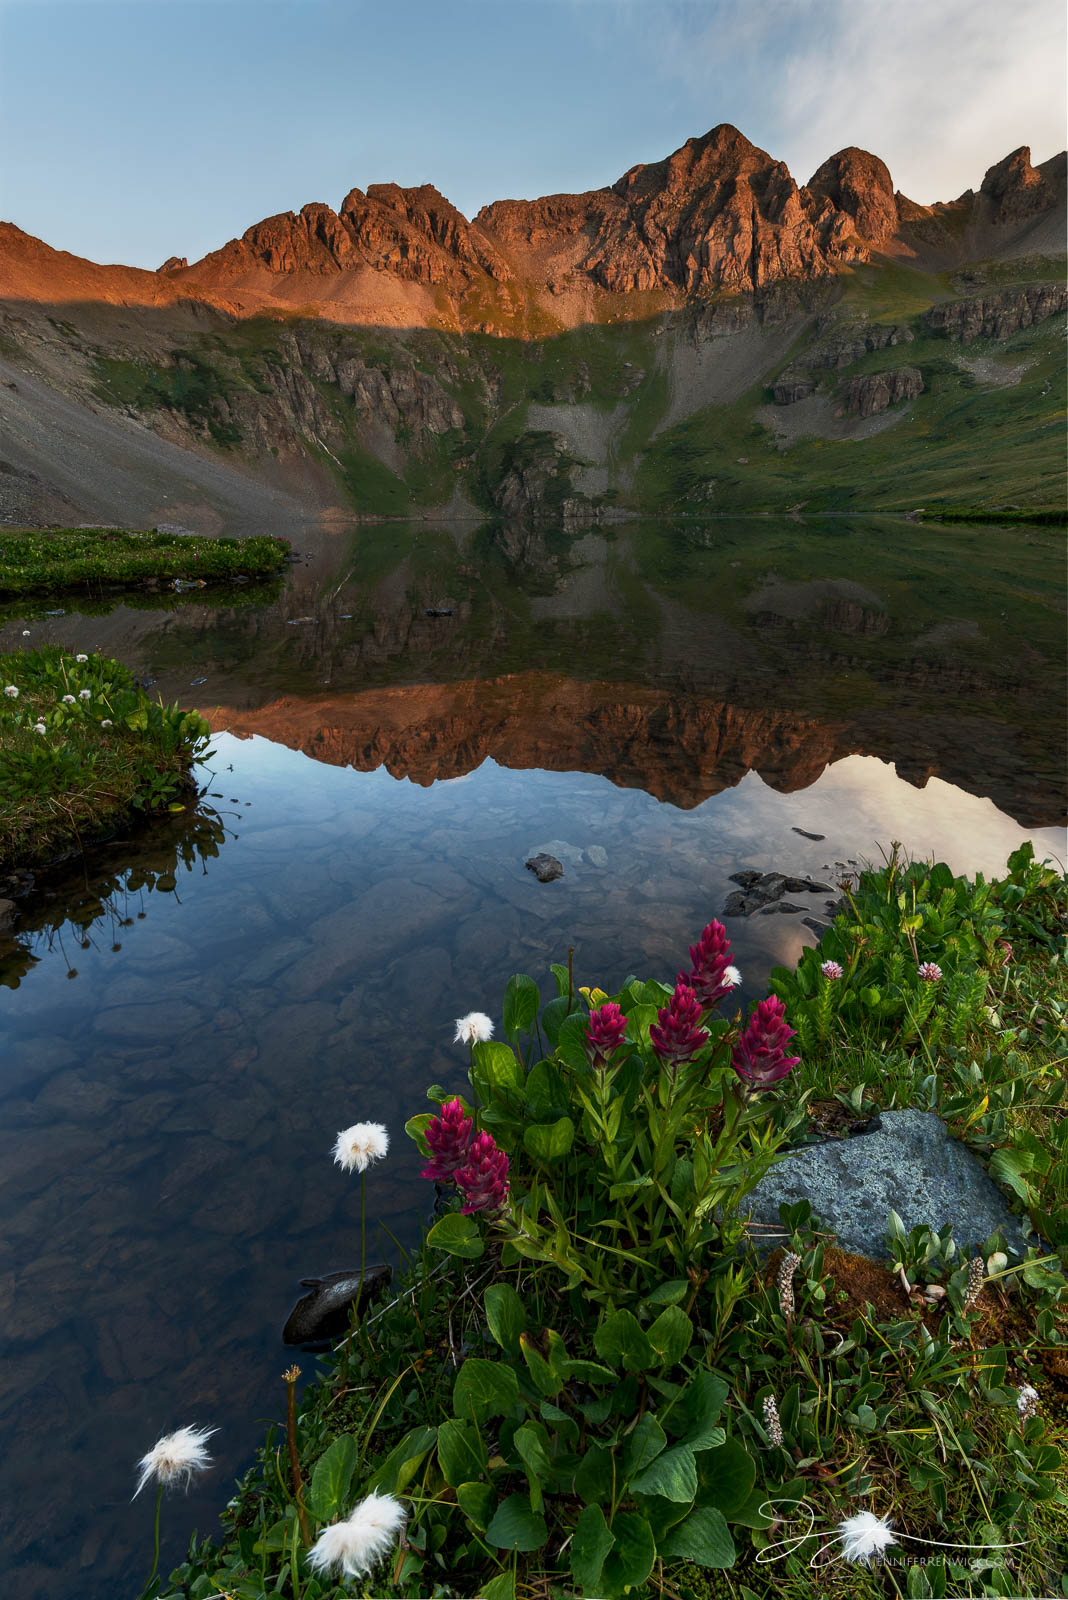 A high alpine lake catches the first light of morning.